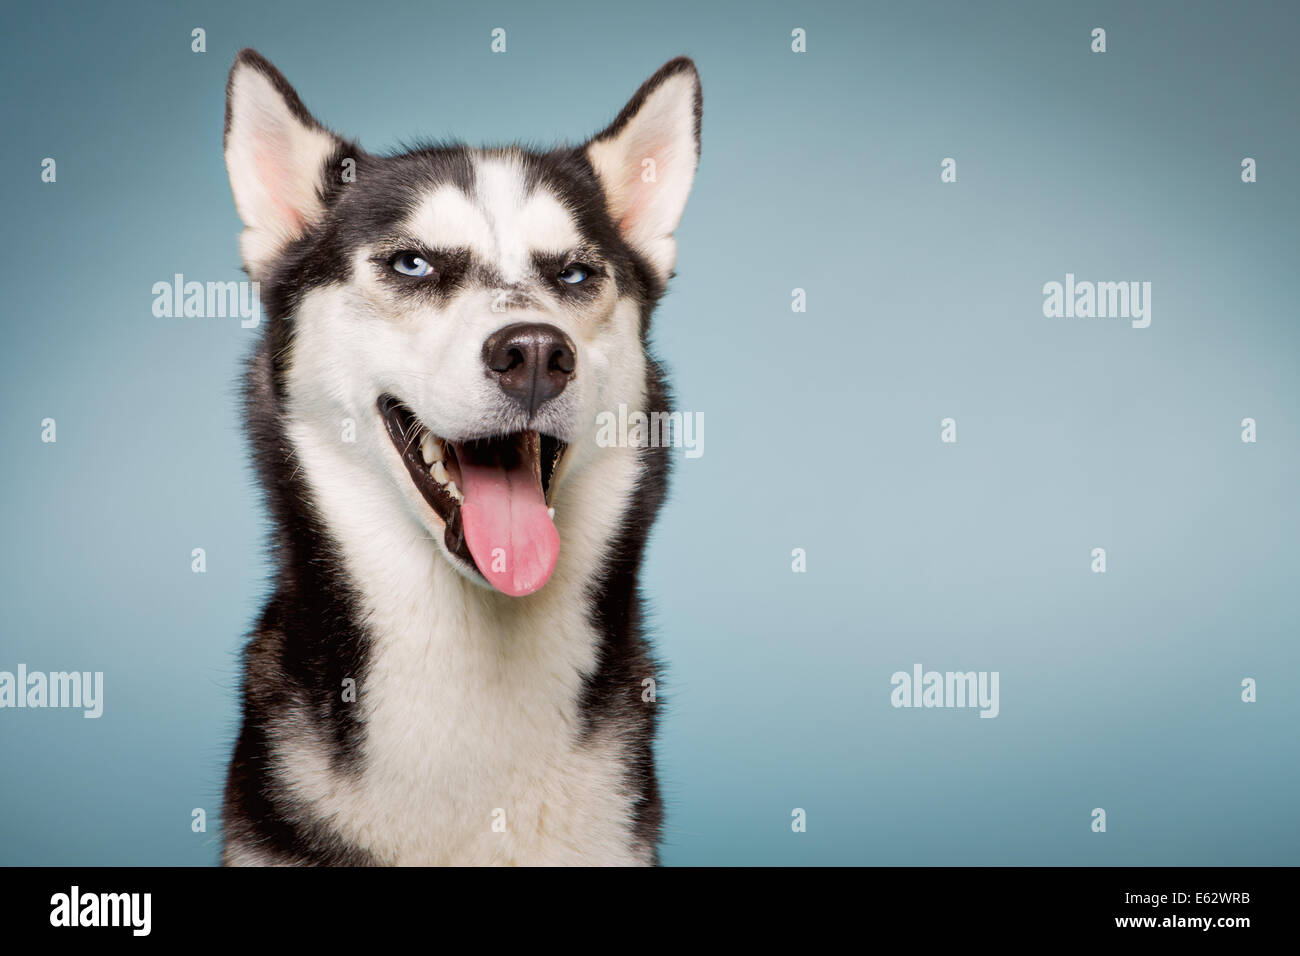 Siberian husky dog looks slyly out of the corner of her eyes - Stock Image